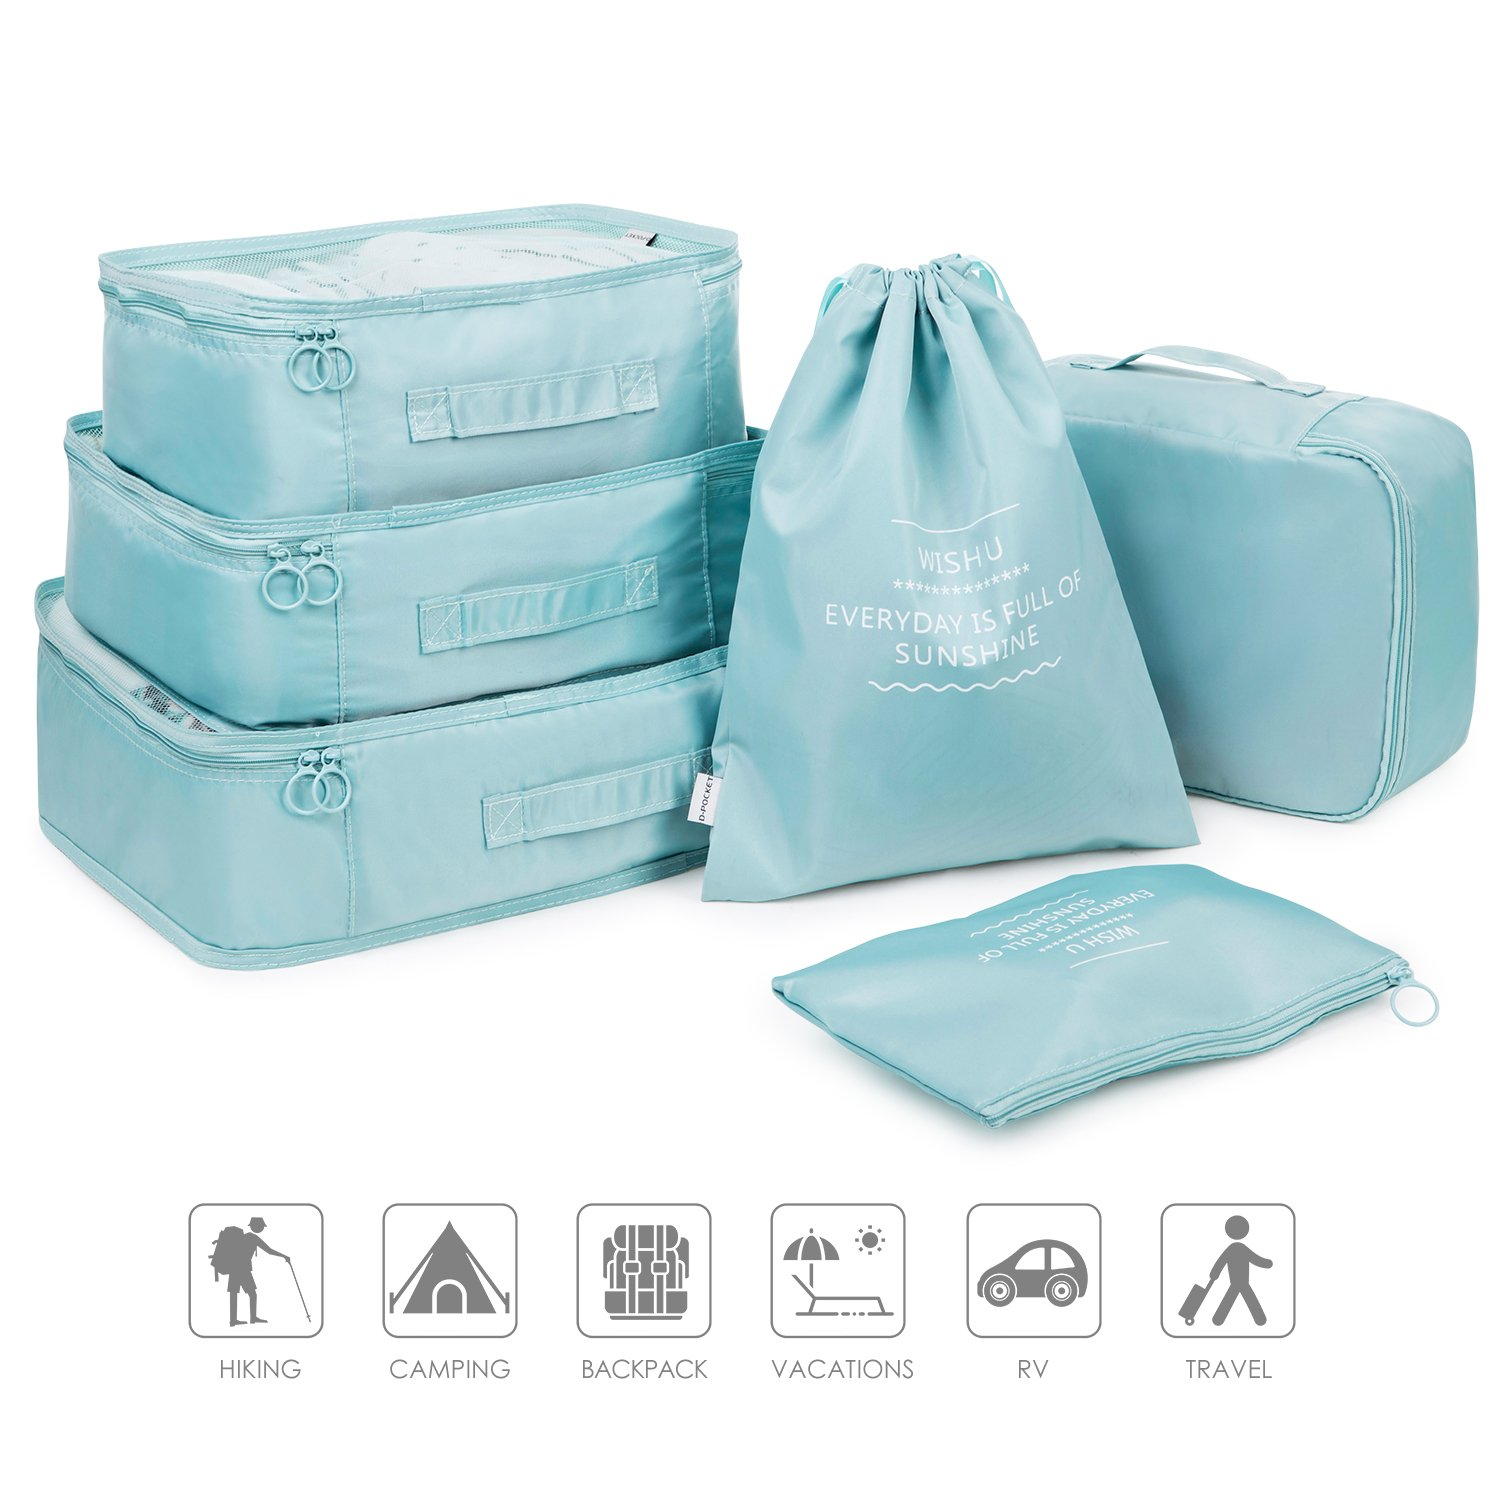 2018 New Pack of 6 Packing Cubes Travel Luggage Organizers Clothing Storage Sorting Package Shoe Bag Laundry Bra Storage Pouches and Electronics Accessories Pouch (blue)